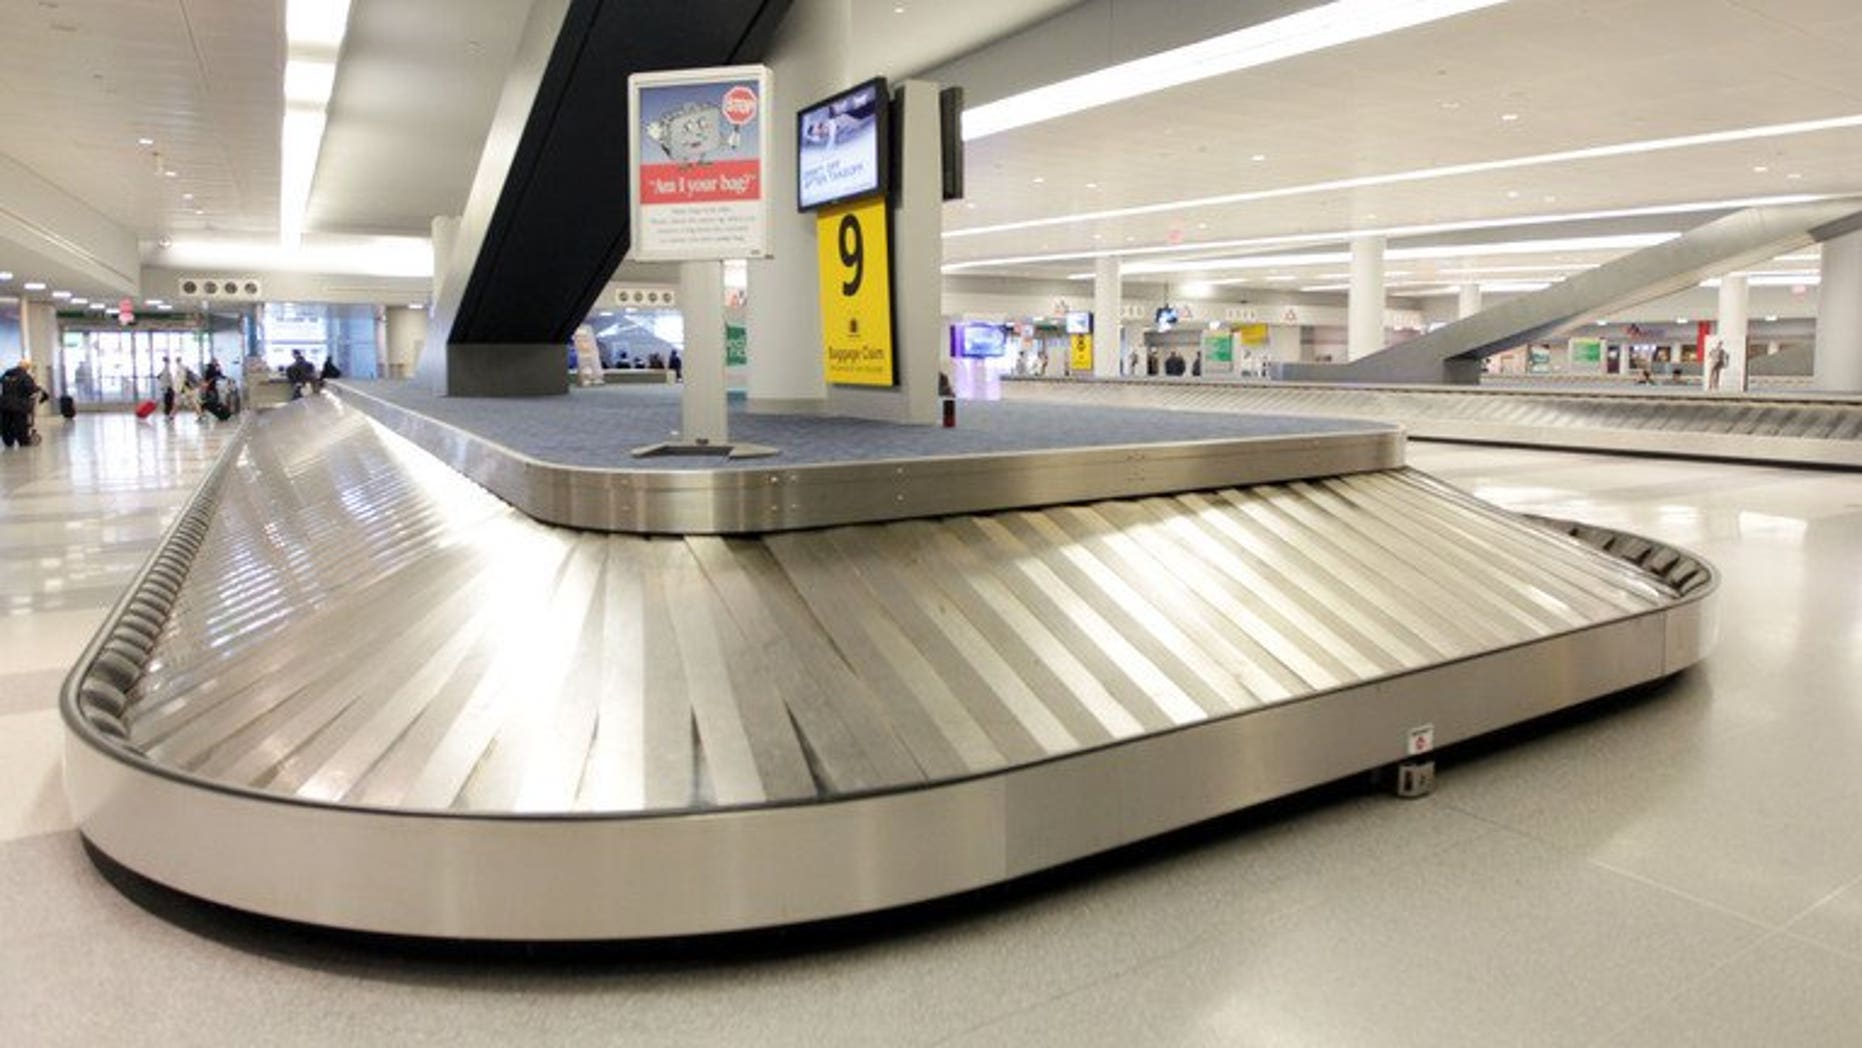 An empty baggage return area at New York's John F. Kennedy International Airport on October 31, 2012. A five-month-old baby died in a Spanish airport on Thursday after being placed on a luggage belt that then started moving without its parents noticing, officials said.